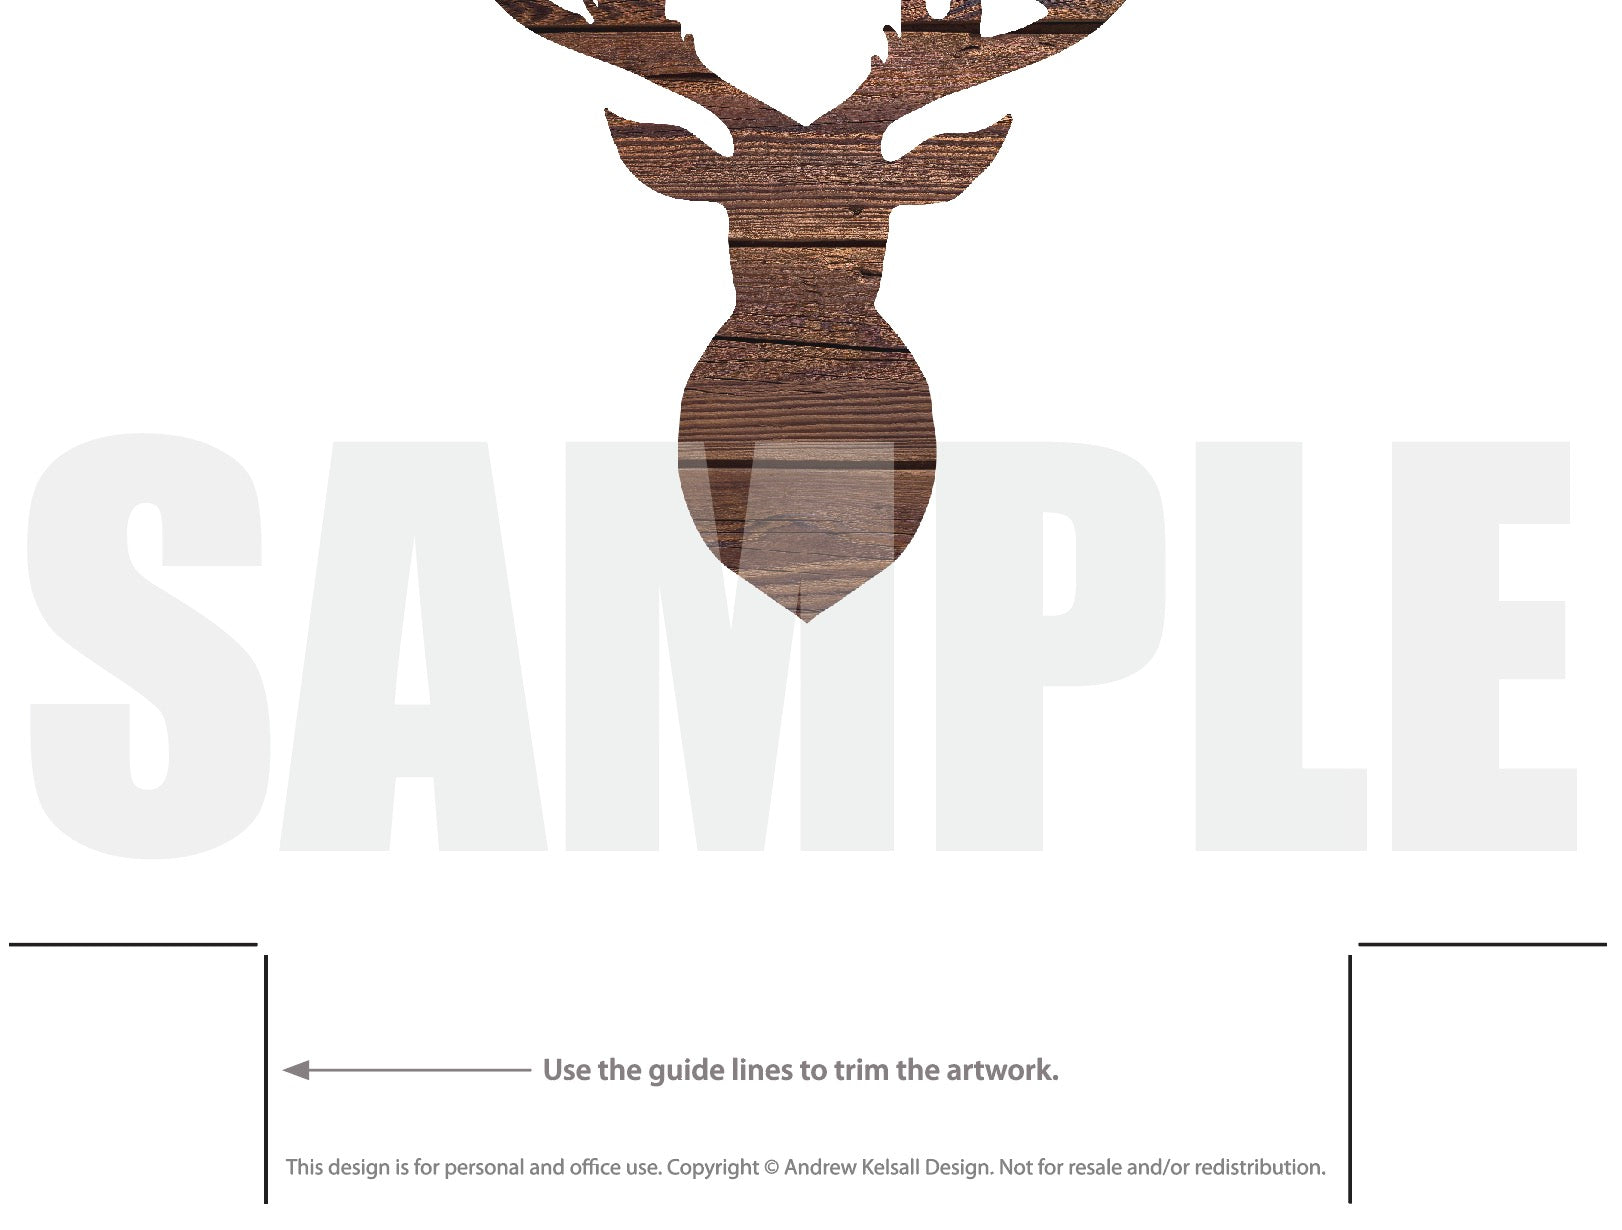 graphic about Printable Deer Head Silhouette titled Deer Thoughts Silhouette Palm Leaves Printable: Deer Brain